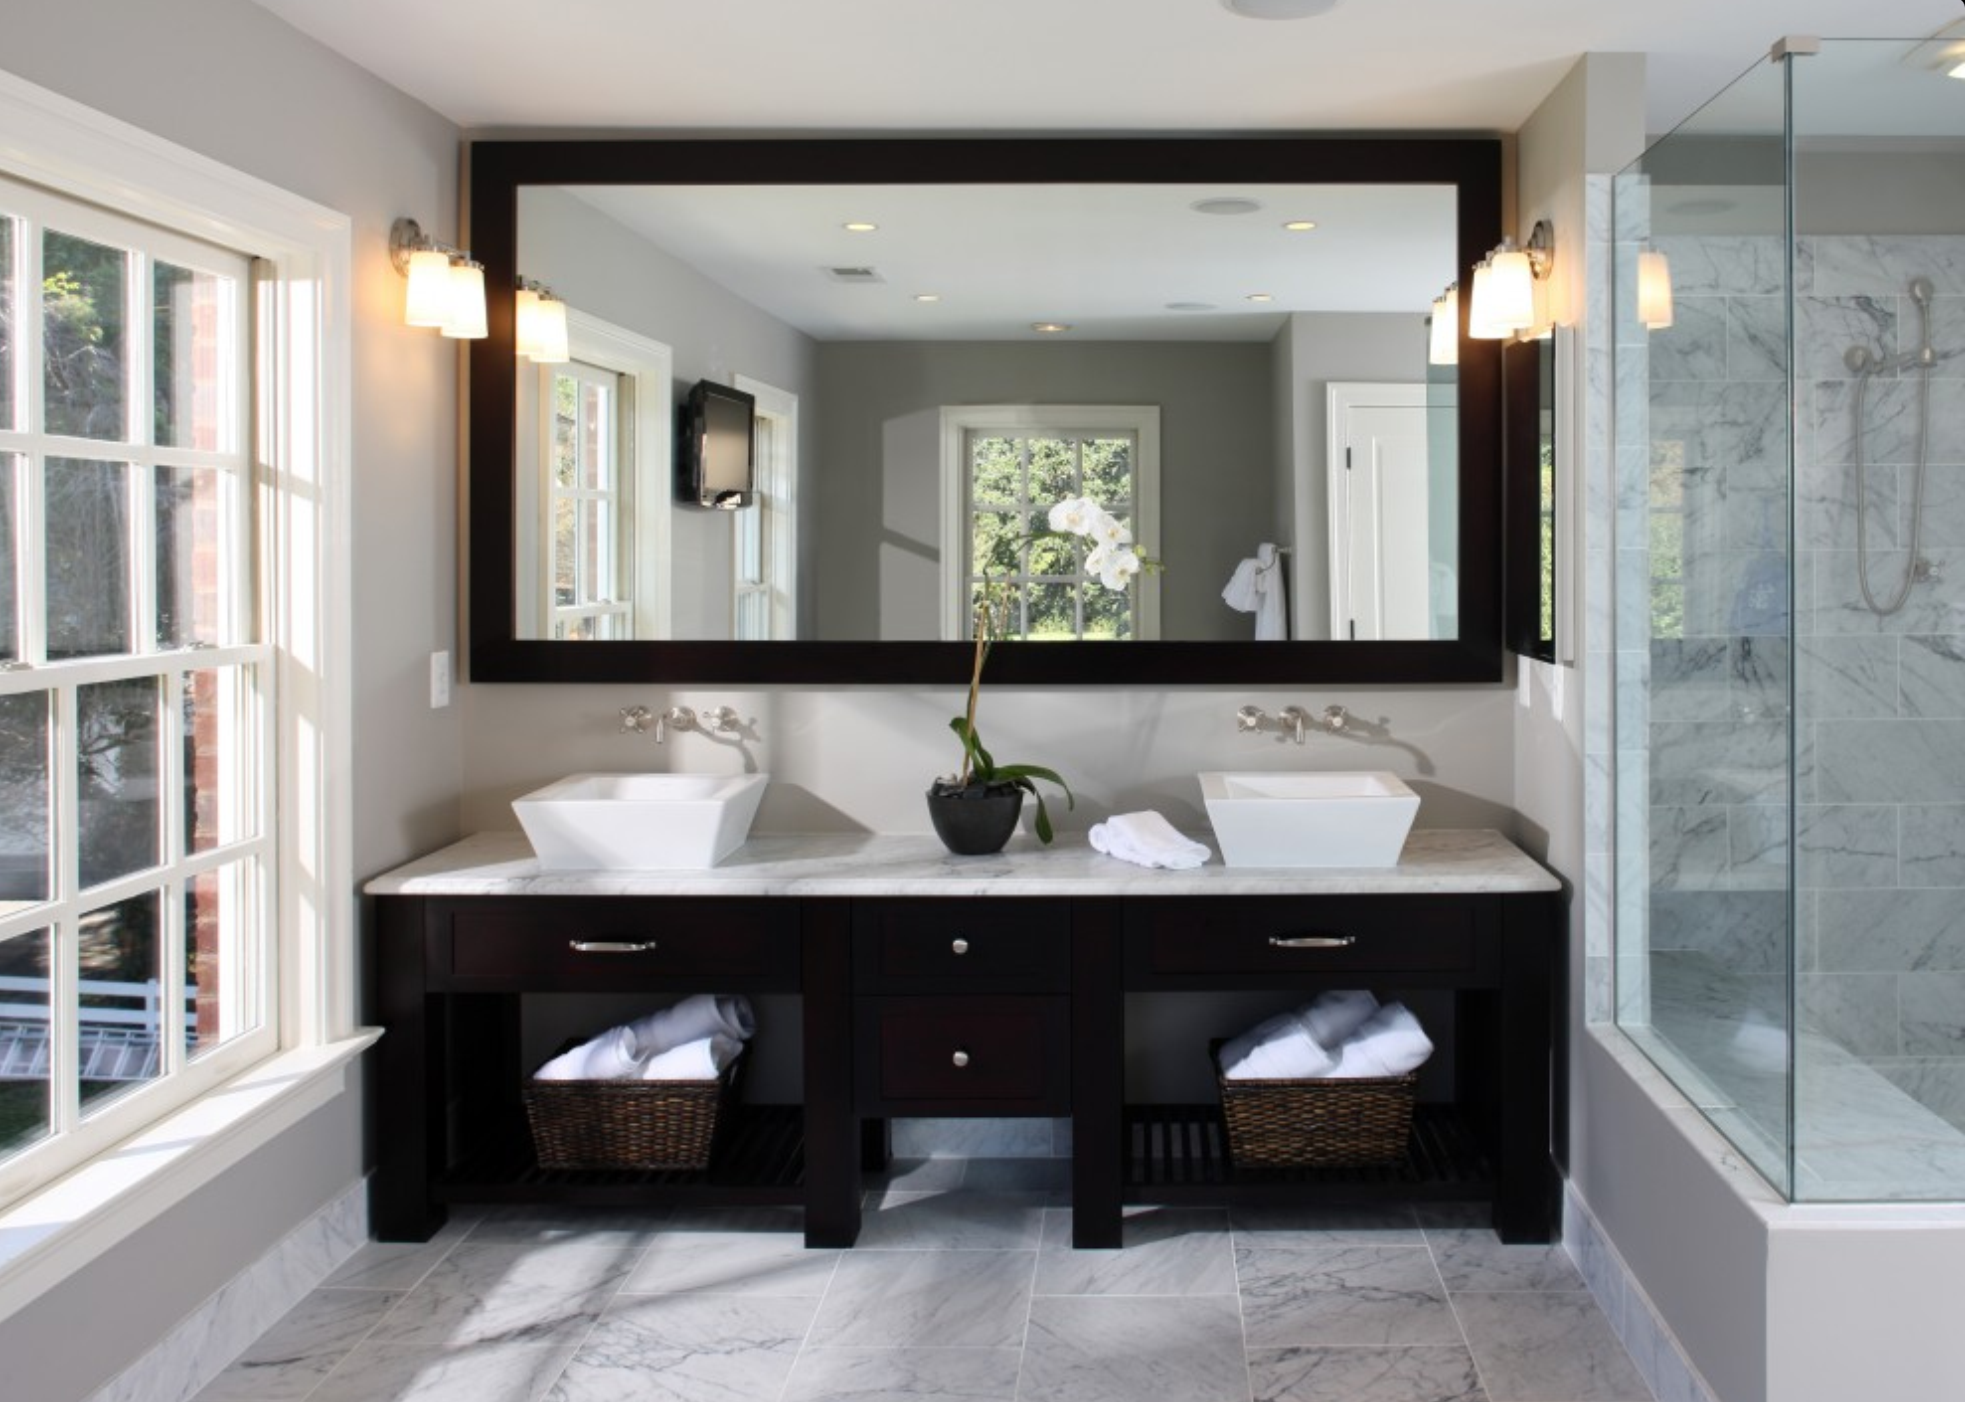 Preparing For A Bathroom Remodel HomeAdvisor - Bathroom remodel schedule